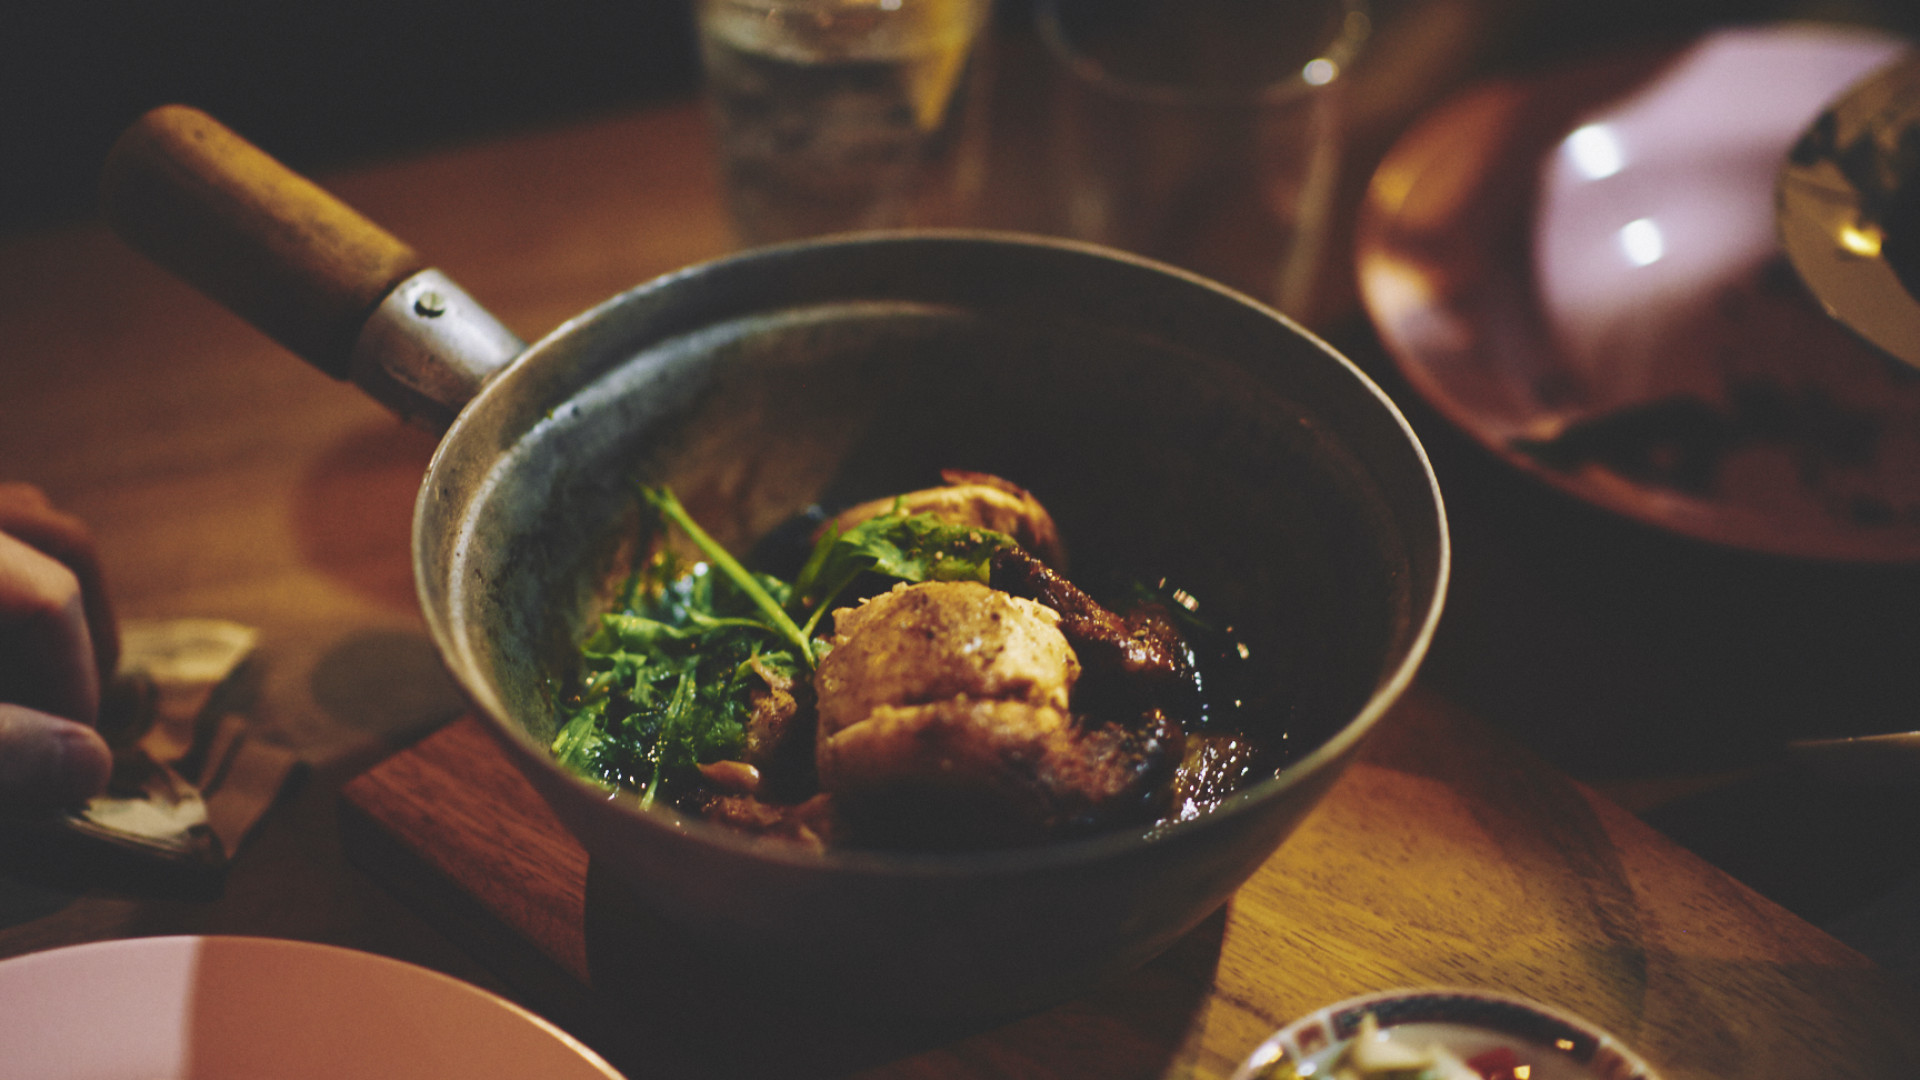 The soya-braised chicken at Smoking Goat Shoreditch